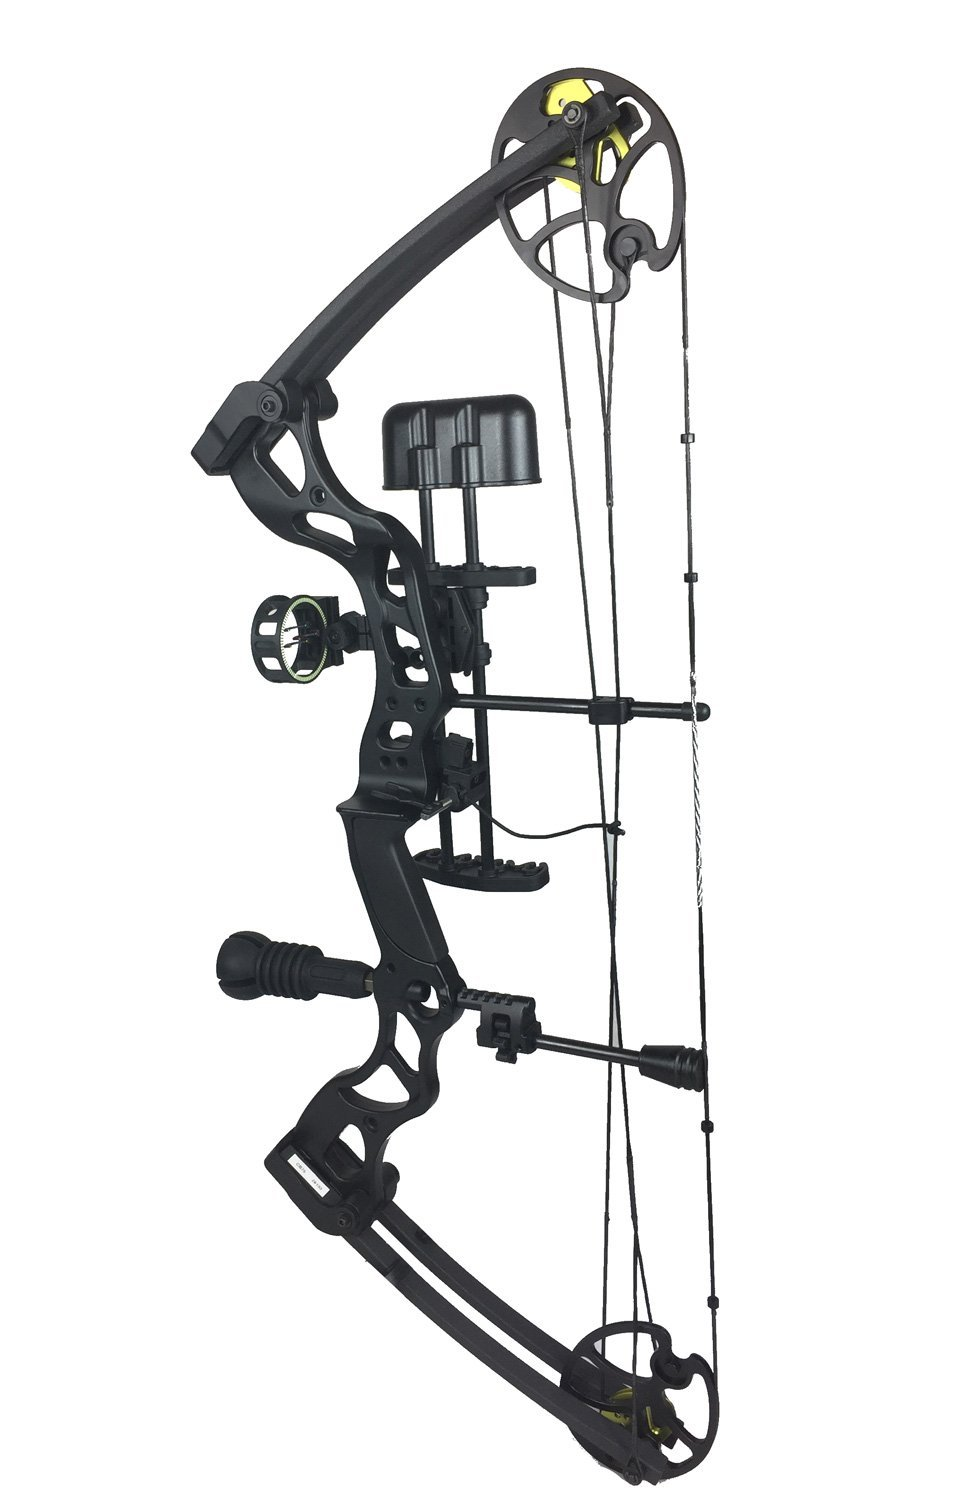 955x1500 Asd Black Pro Series Adult Archery Compound Bow 70lbs Complete